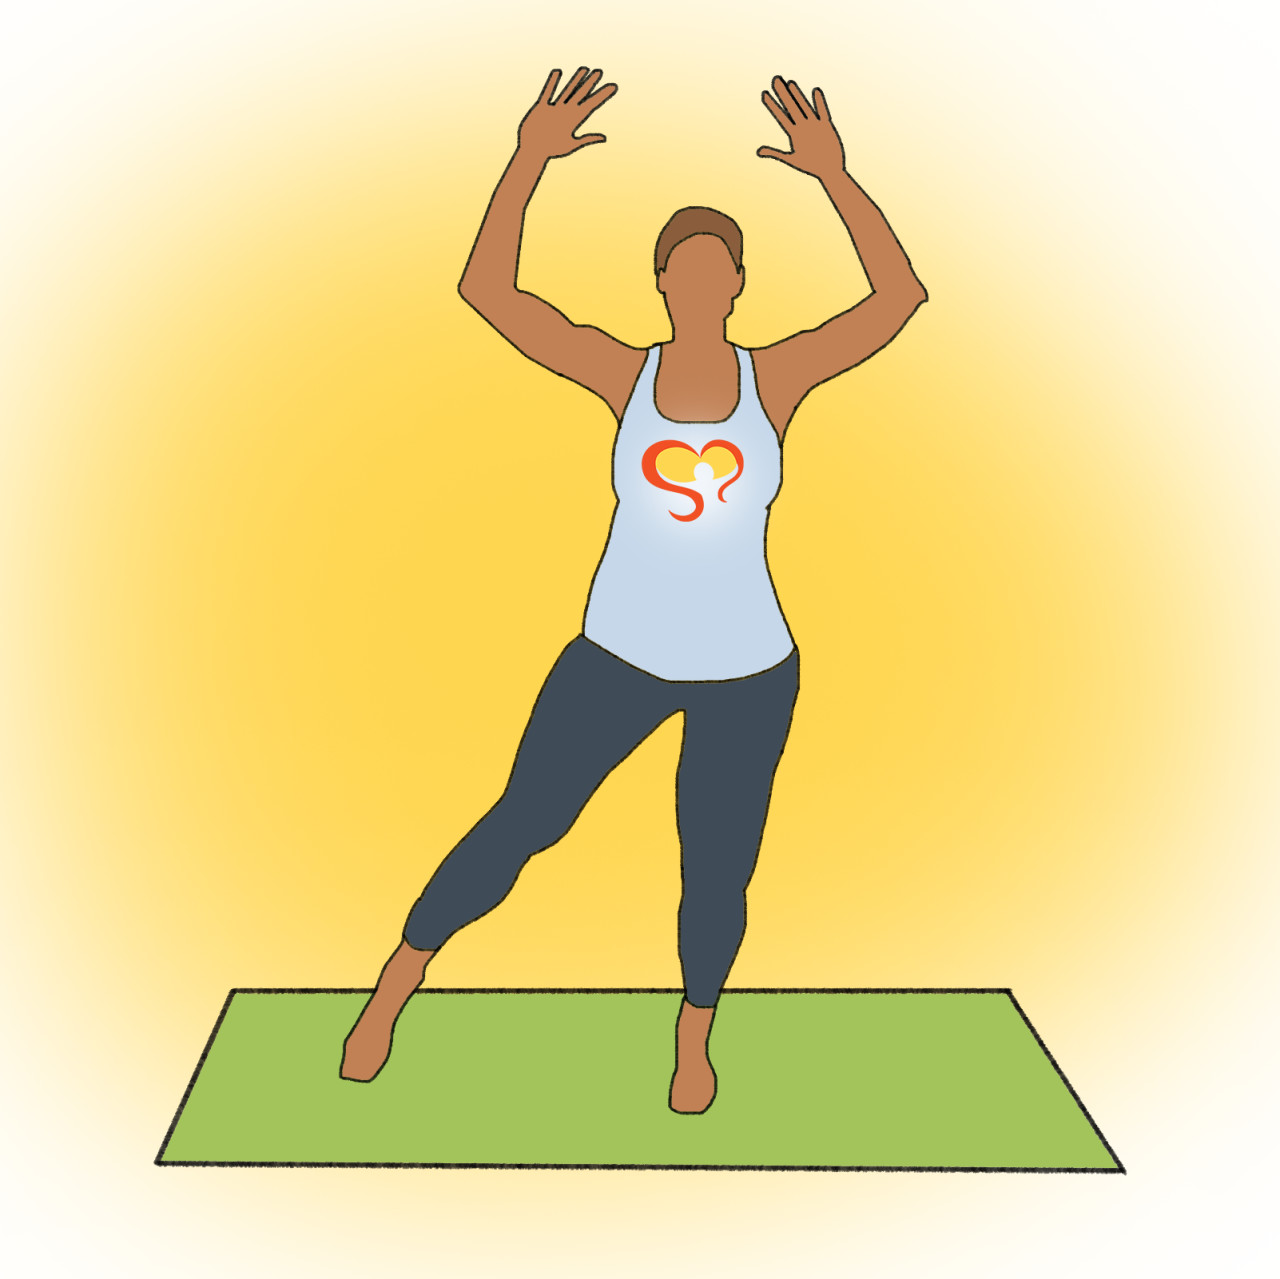 jumpingjack3 png 6I6hlHZ9 - Warm It Up - Wellness Wednesday